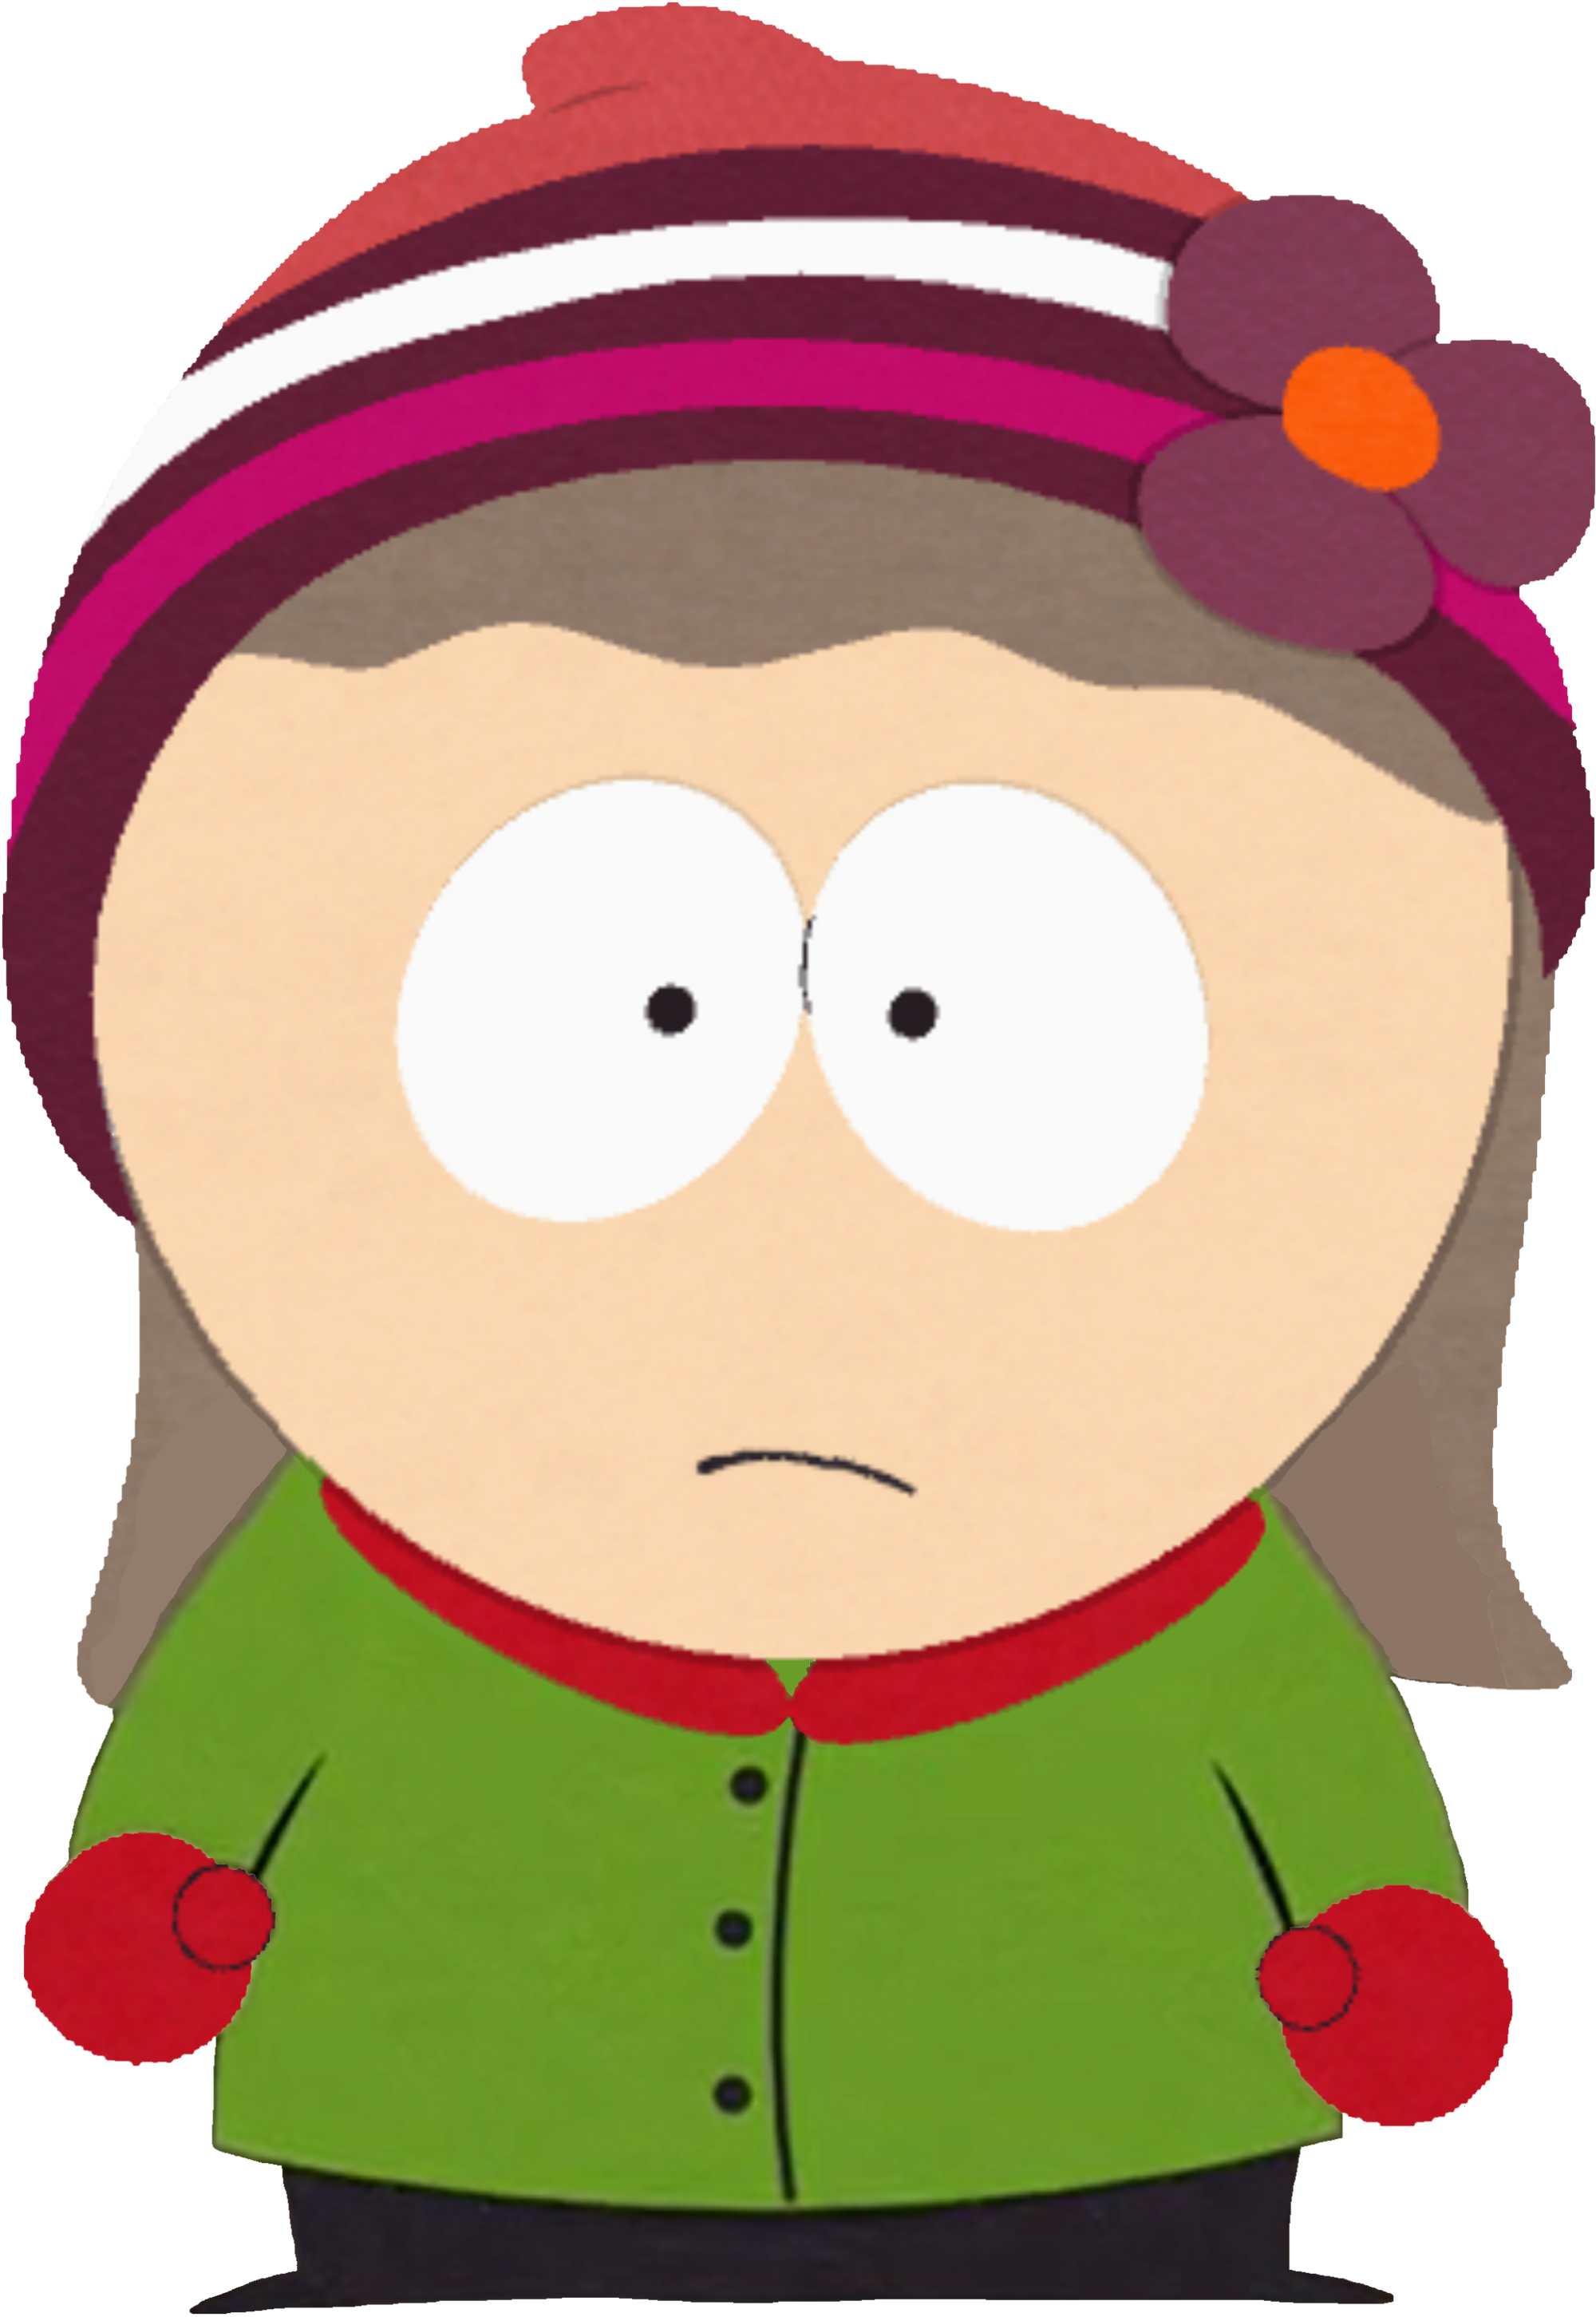 Download Hd Heidi Bloated Heidi From South Park Transparent Png